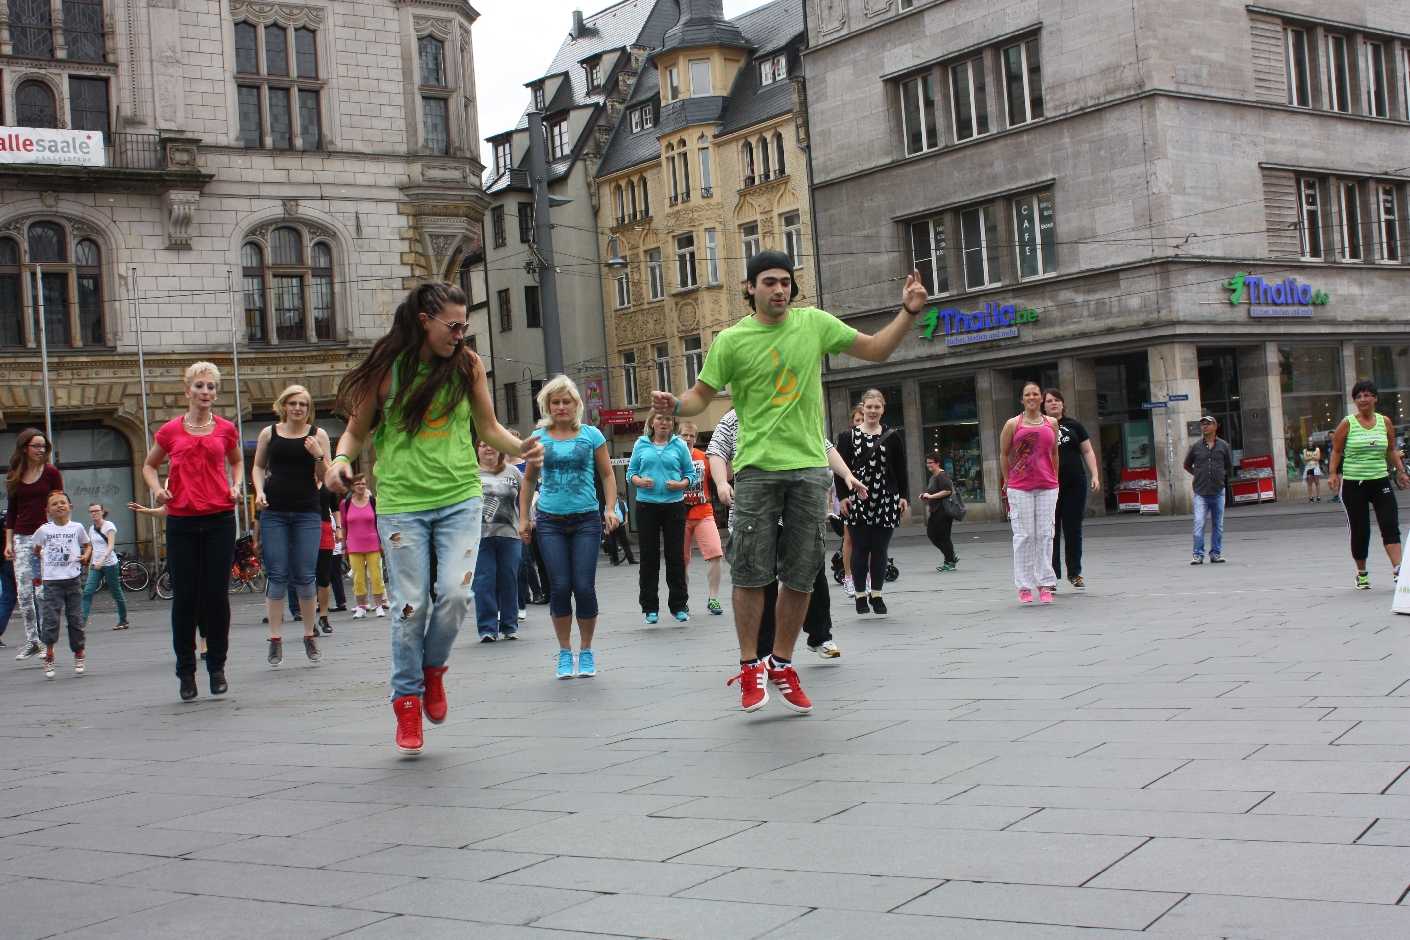 bokwa flashmob sportliches auf dem markt in halle onlinemagazin aus halle. Black Bedroom Furniture Sets. Home Design Ideas